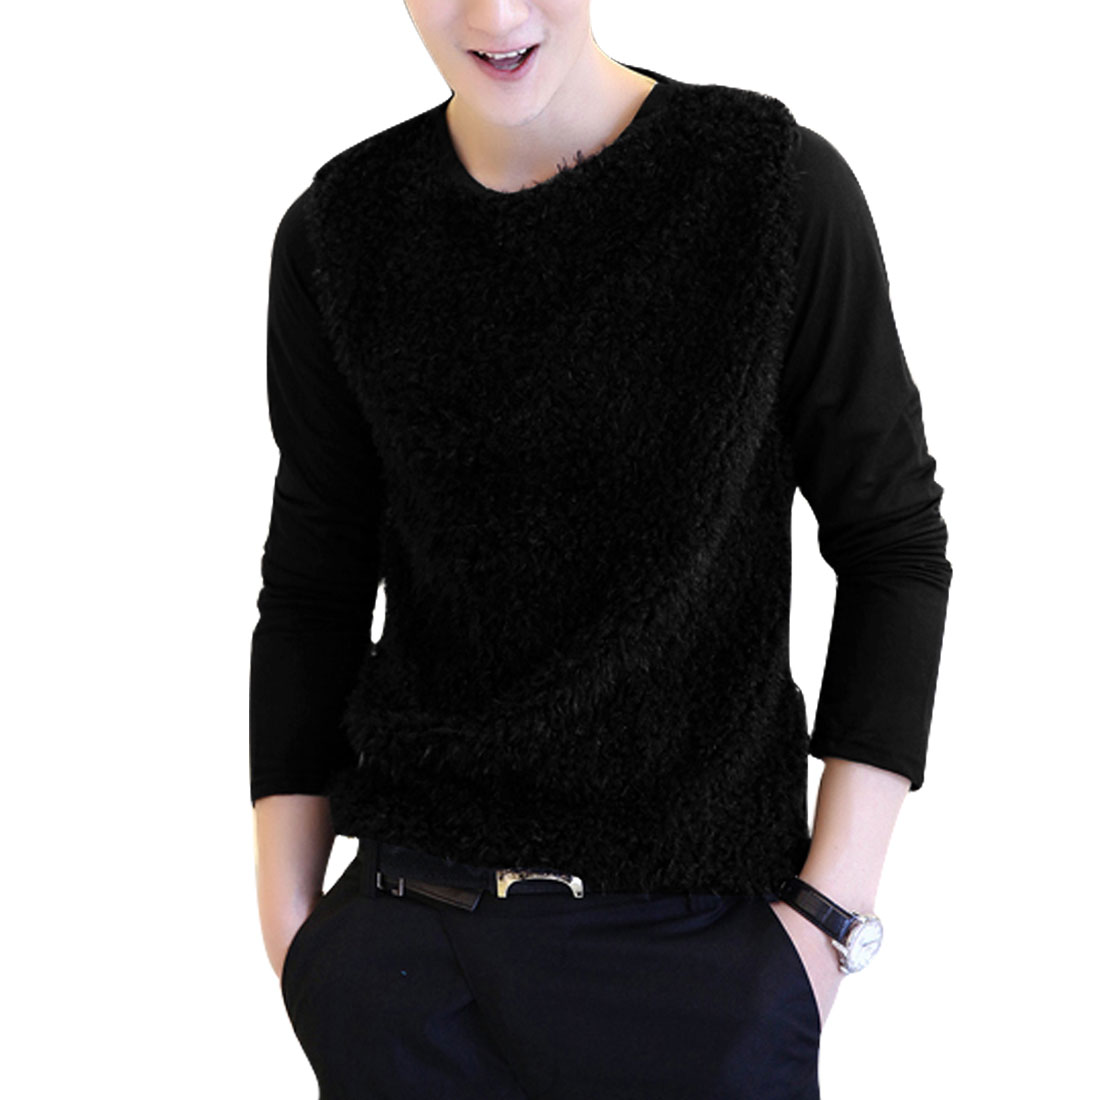 Man Black Long Sleeved Round Neck Patchwork Form-fitting Tee Shirt S